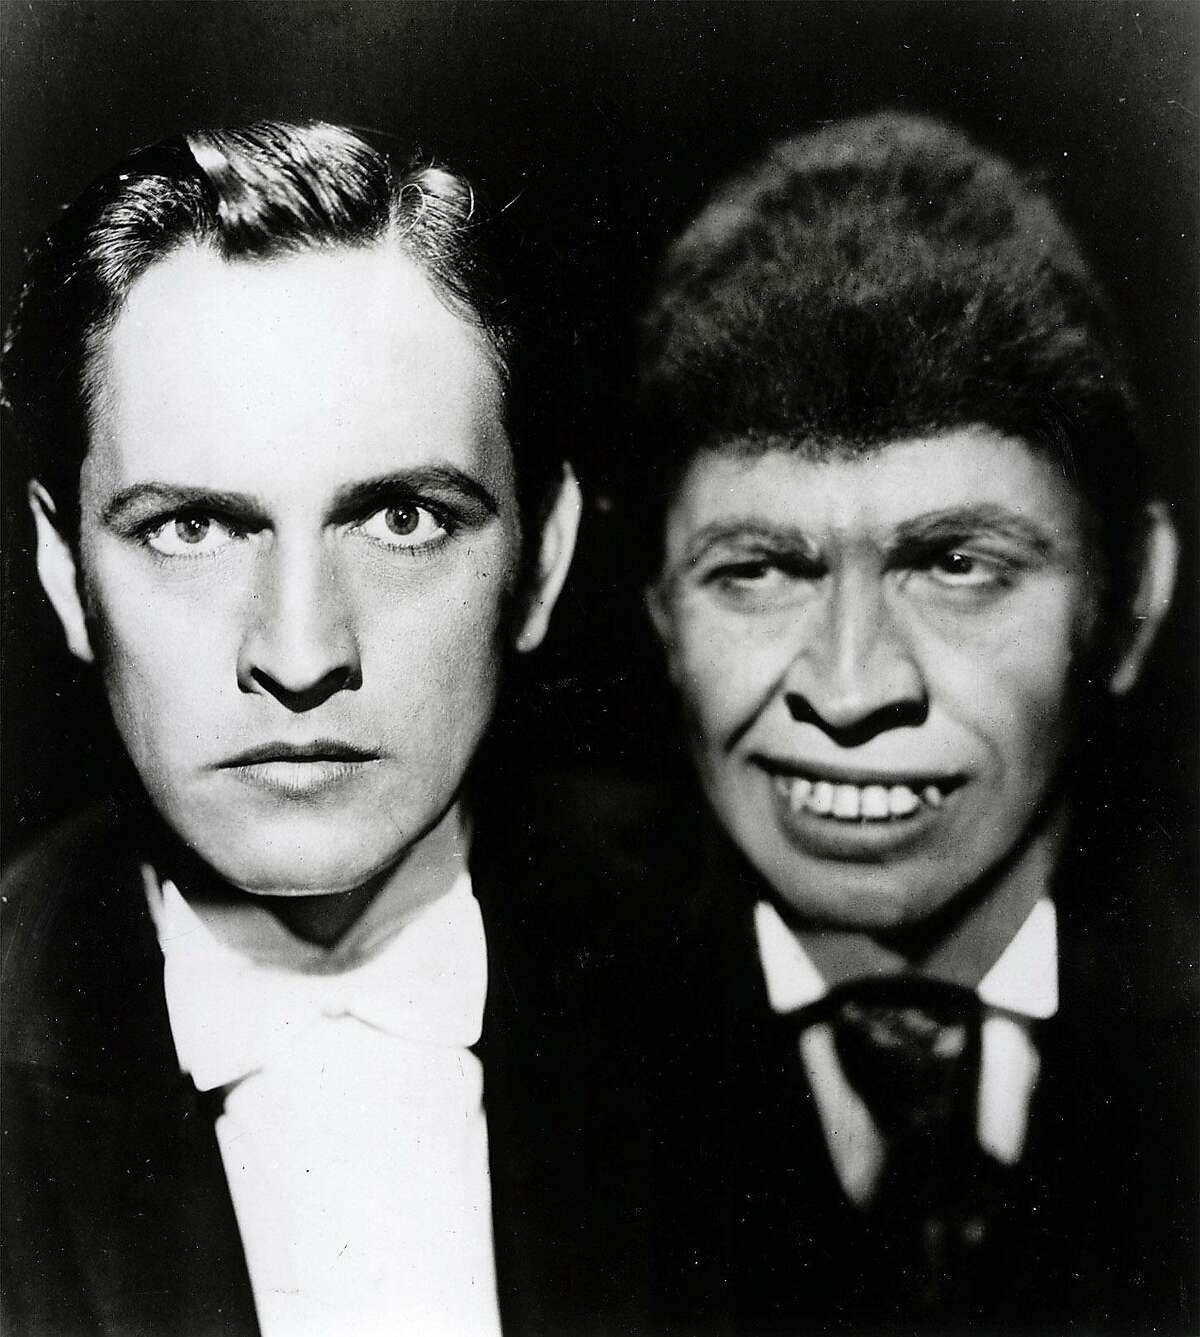 """OSCAR24A-B-23MAR01-DB-HO Fredric March in the classic film """"Dr. Jekyll and Mr. Hyde. Ran on: 11-02-2005 Cary Grant and Mae West broke new ground in She Done Him Wrong (1933)."""